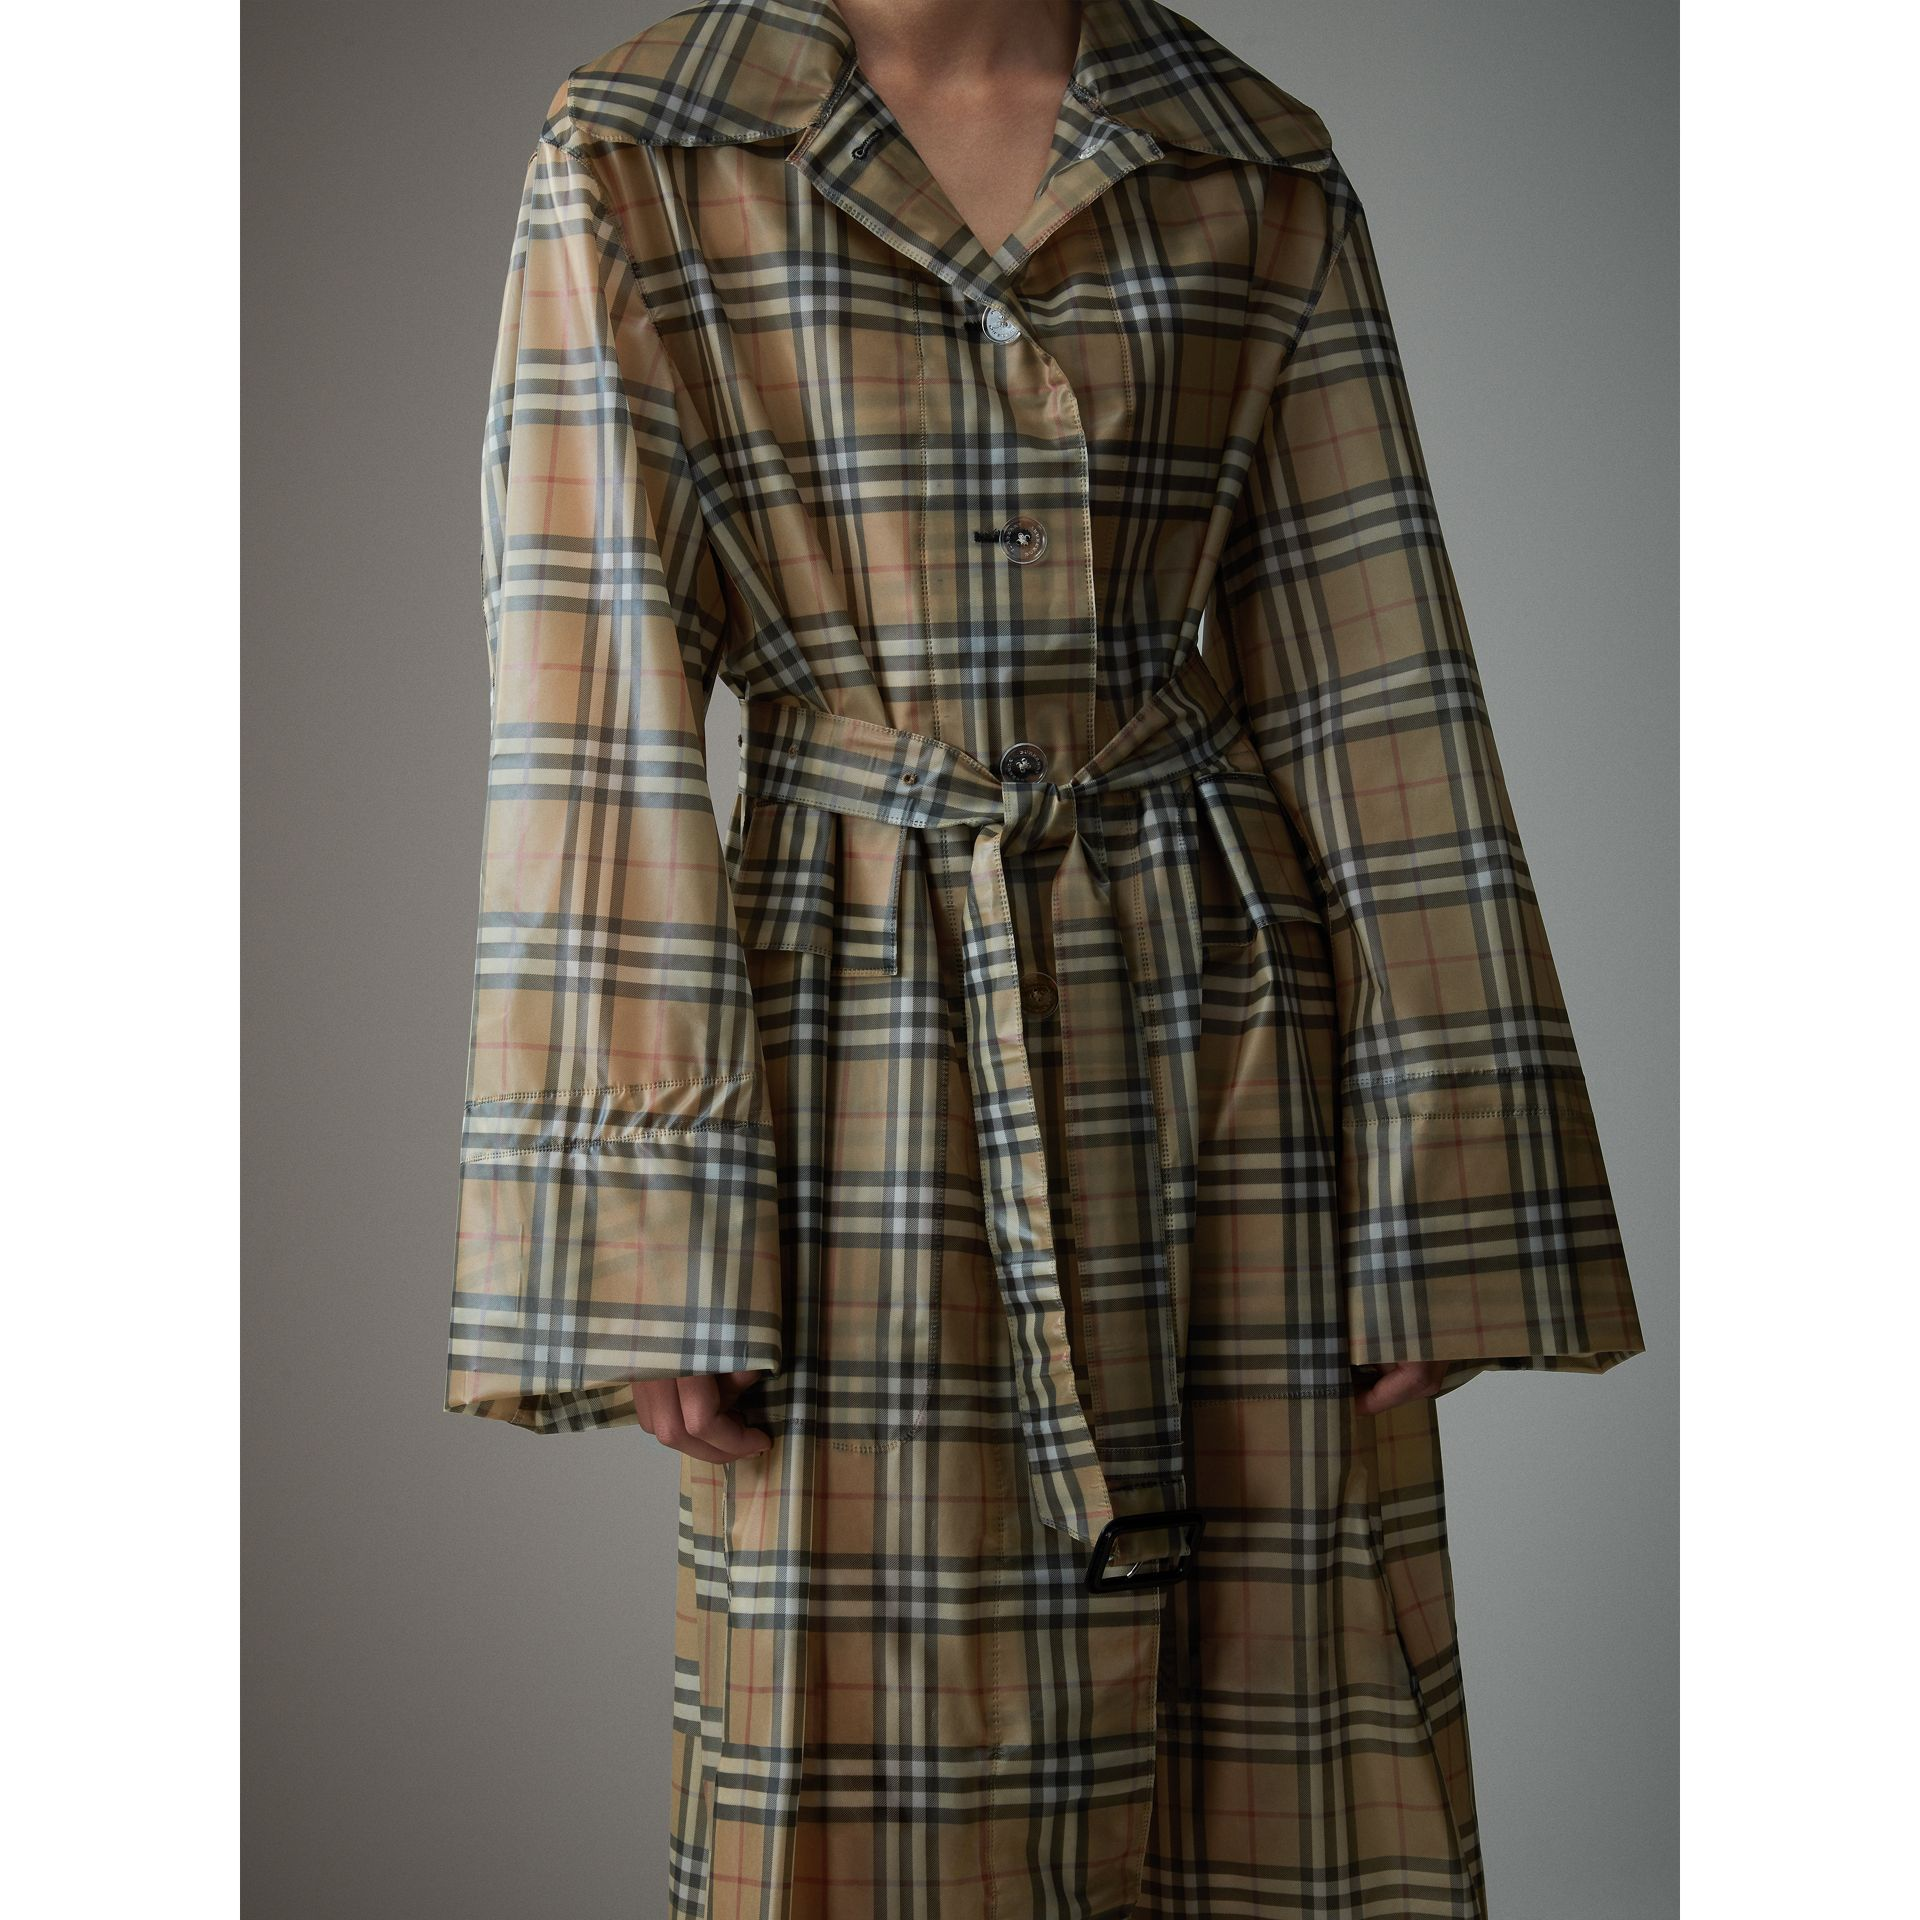 Vintage Check Soft-touch Plastic Single-breasted Coat in Antique Yellow - Women | Burberry Singapore - gallery image 4